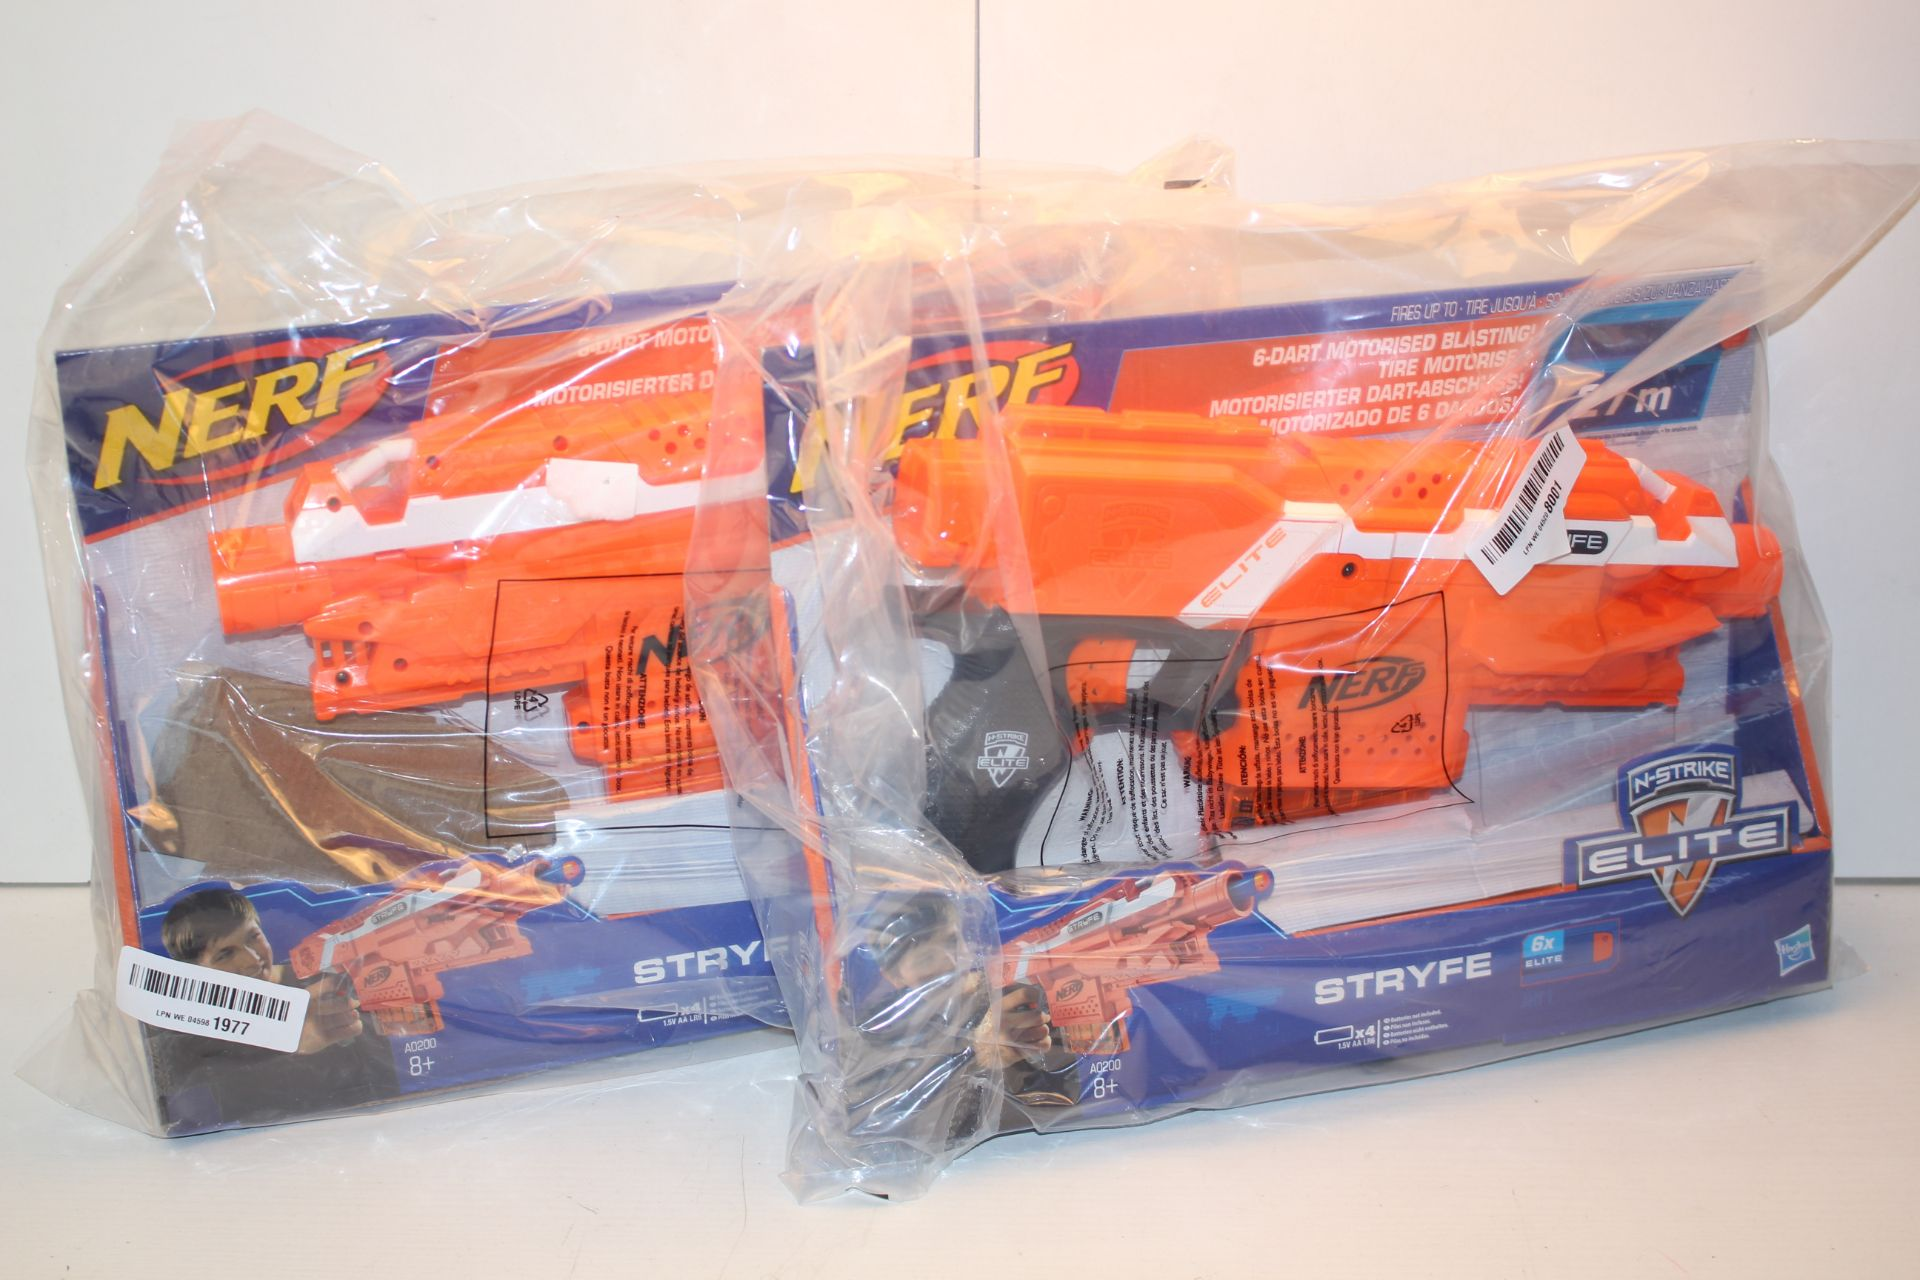 2X BOXED NERF N-STRYKE ELITE STRYFE GUNS Condition ReportAppraisal Available on Request- All Items